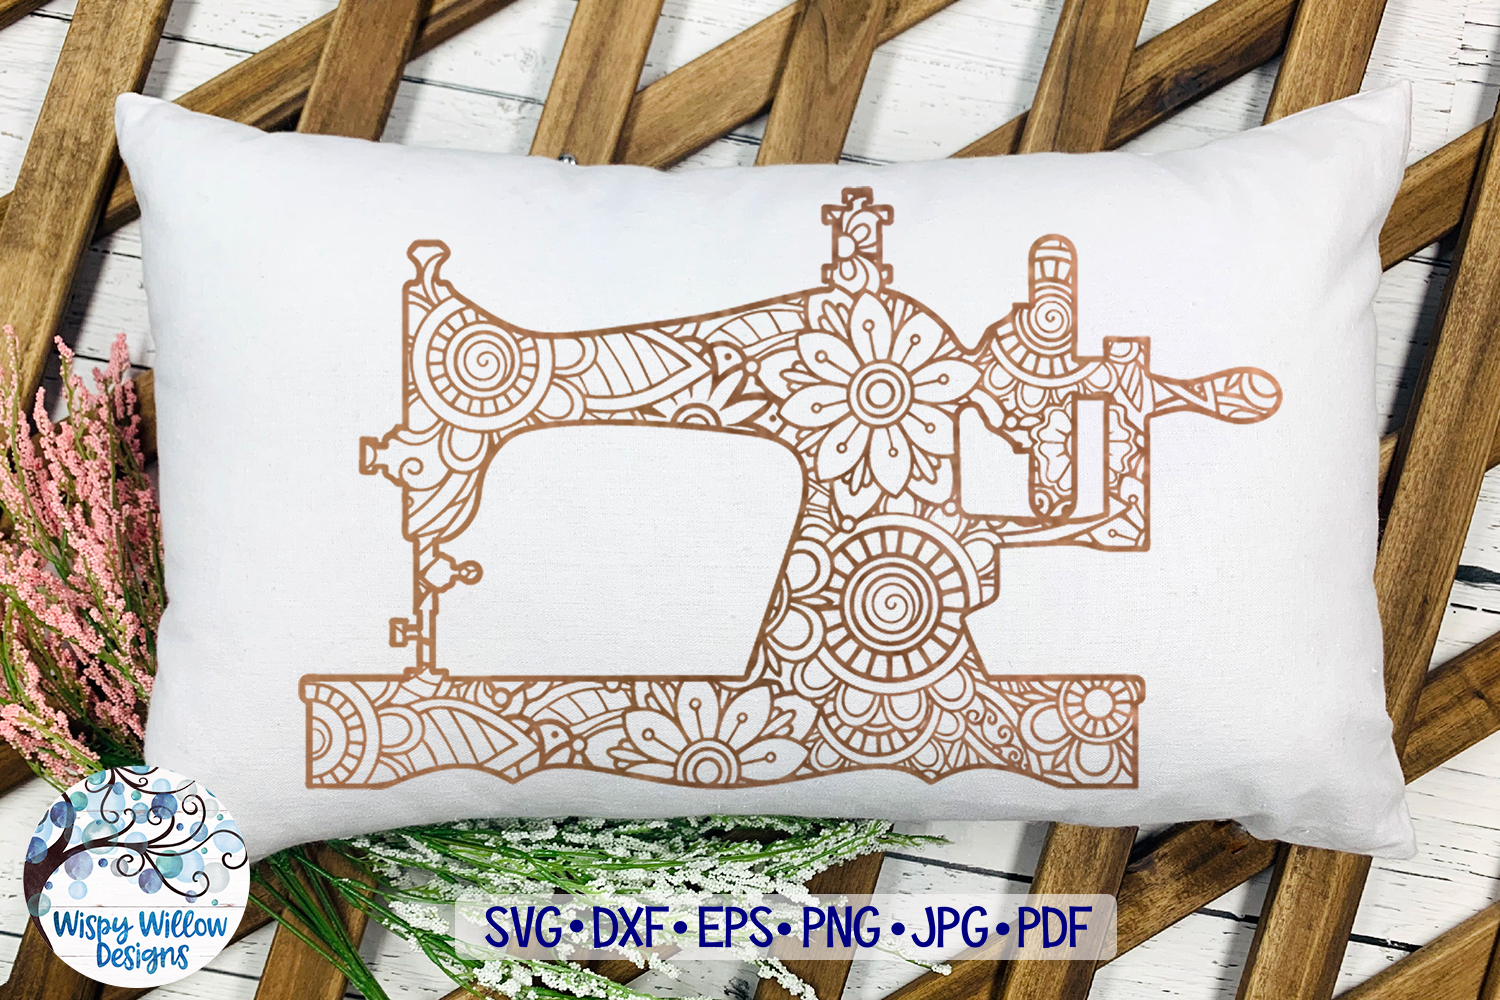 Sewing Machine Zentangle SVG example image 2